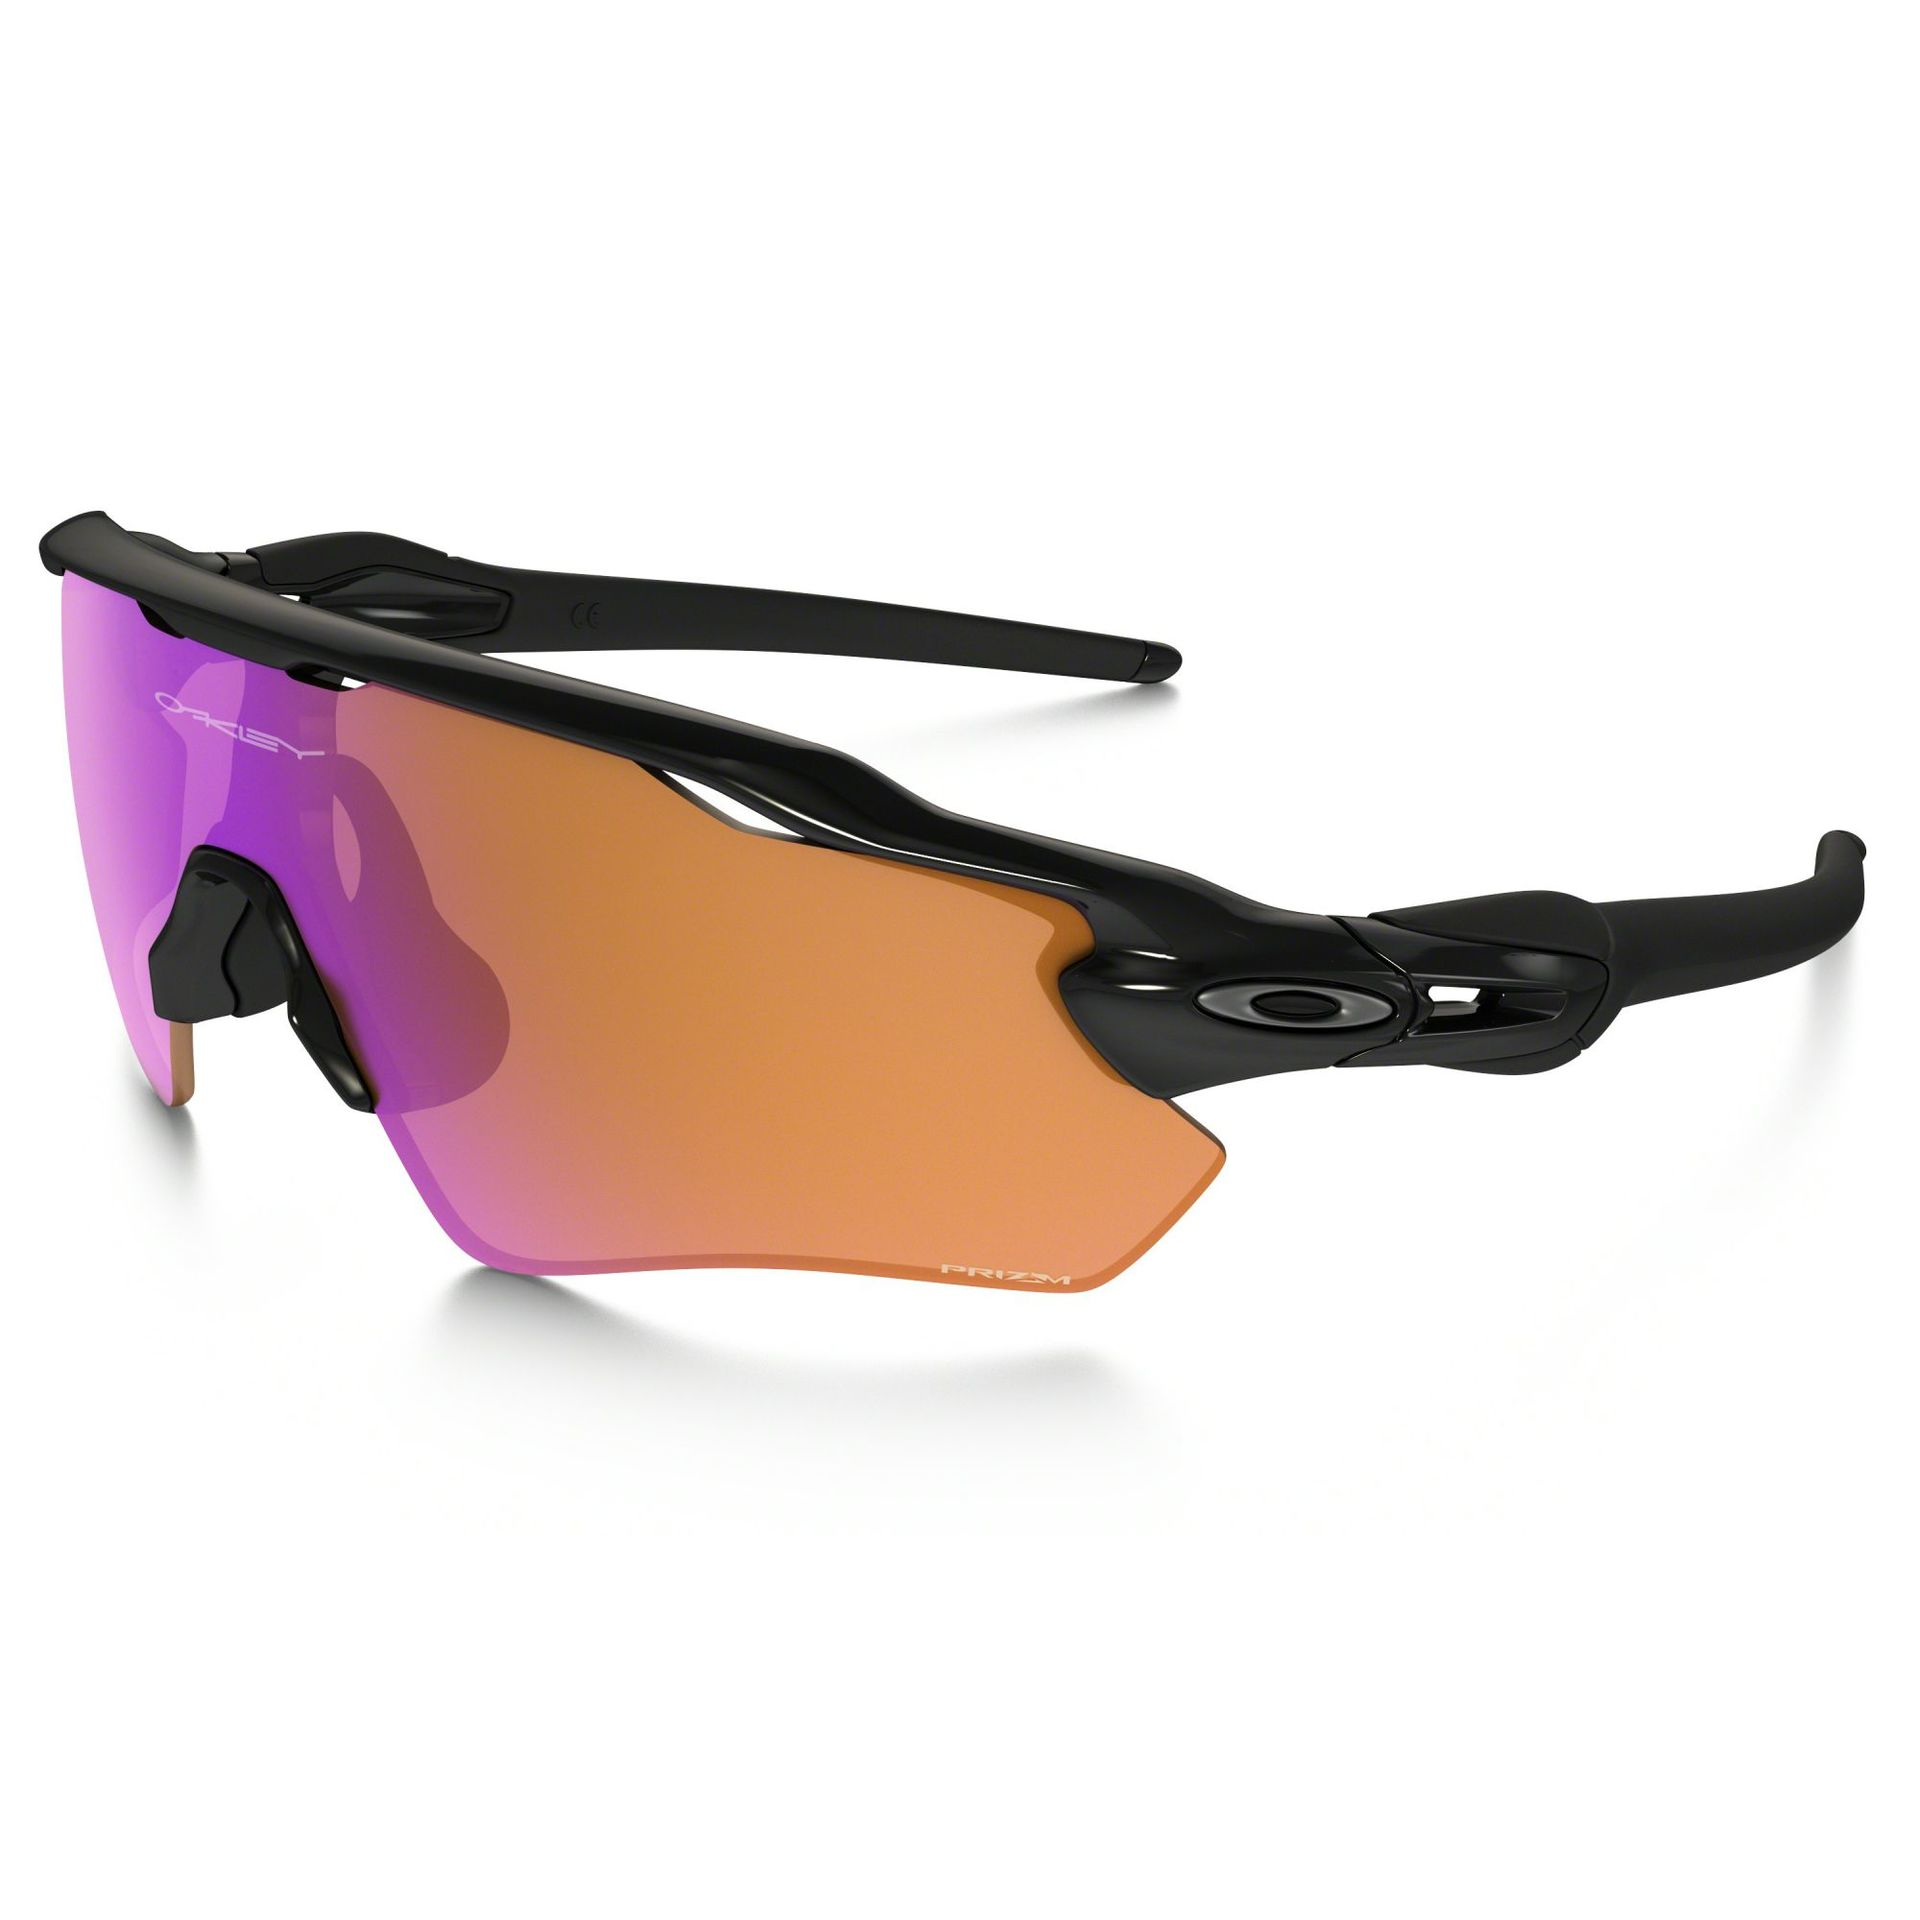 OKULARY OAKLEY RADAR EV PATH PRIZM TRAIL 1